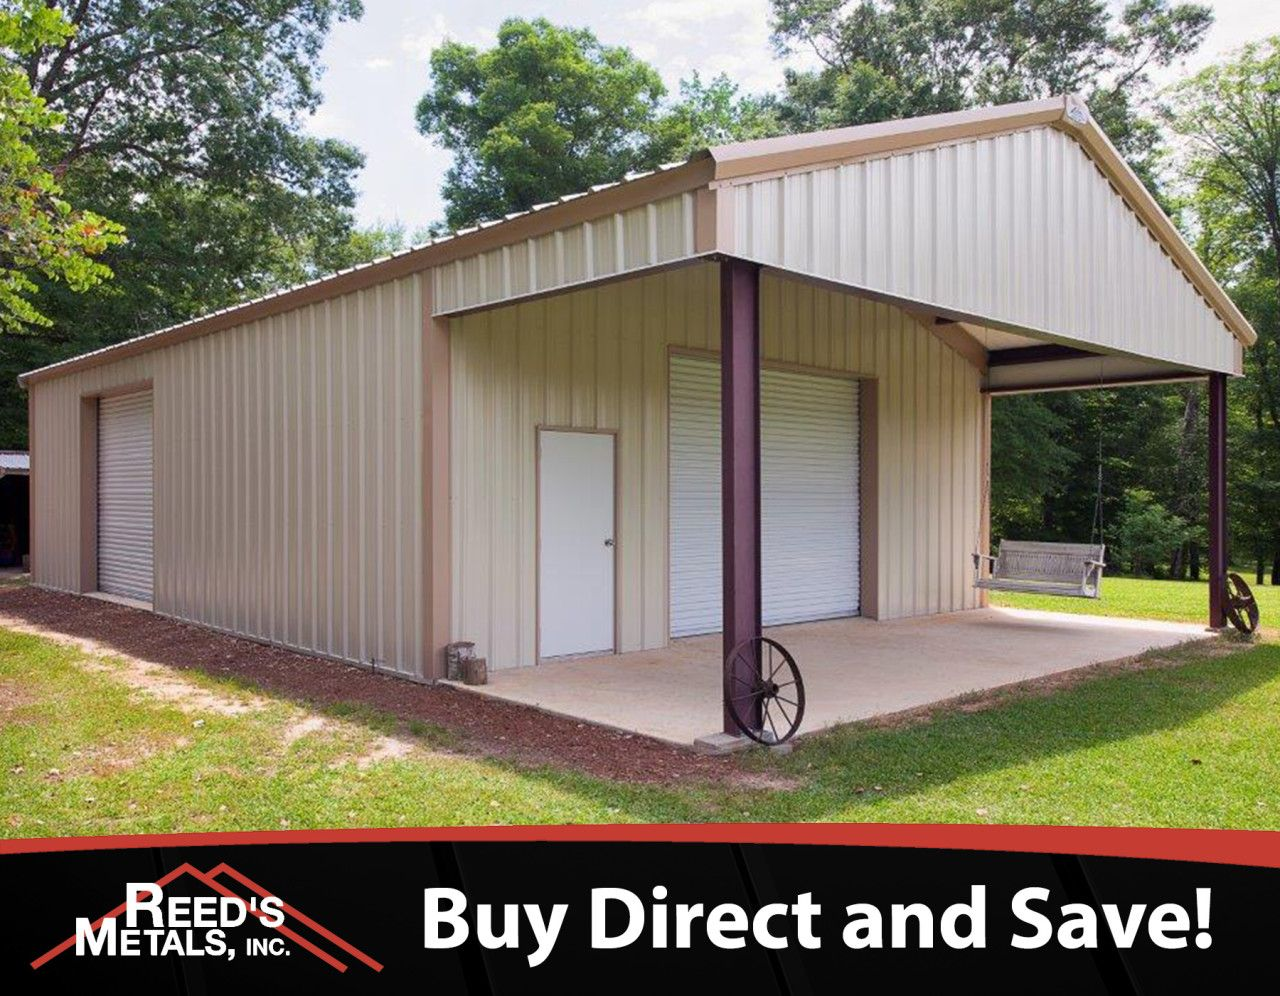 If You Re Looking For A Durable Pre Engineered Steel Building To Solve All Of Your Storage Problems Look No Further Metal Buildings Steel Buildings Building